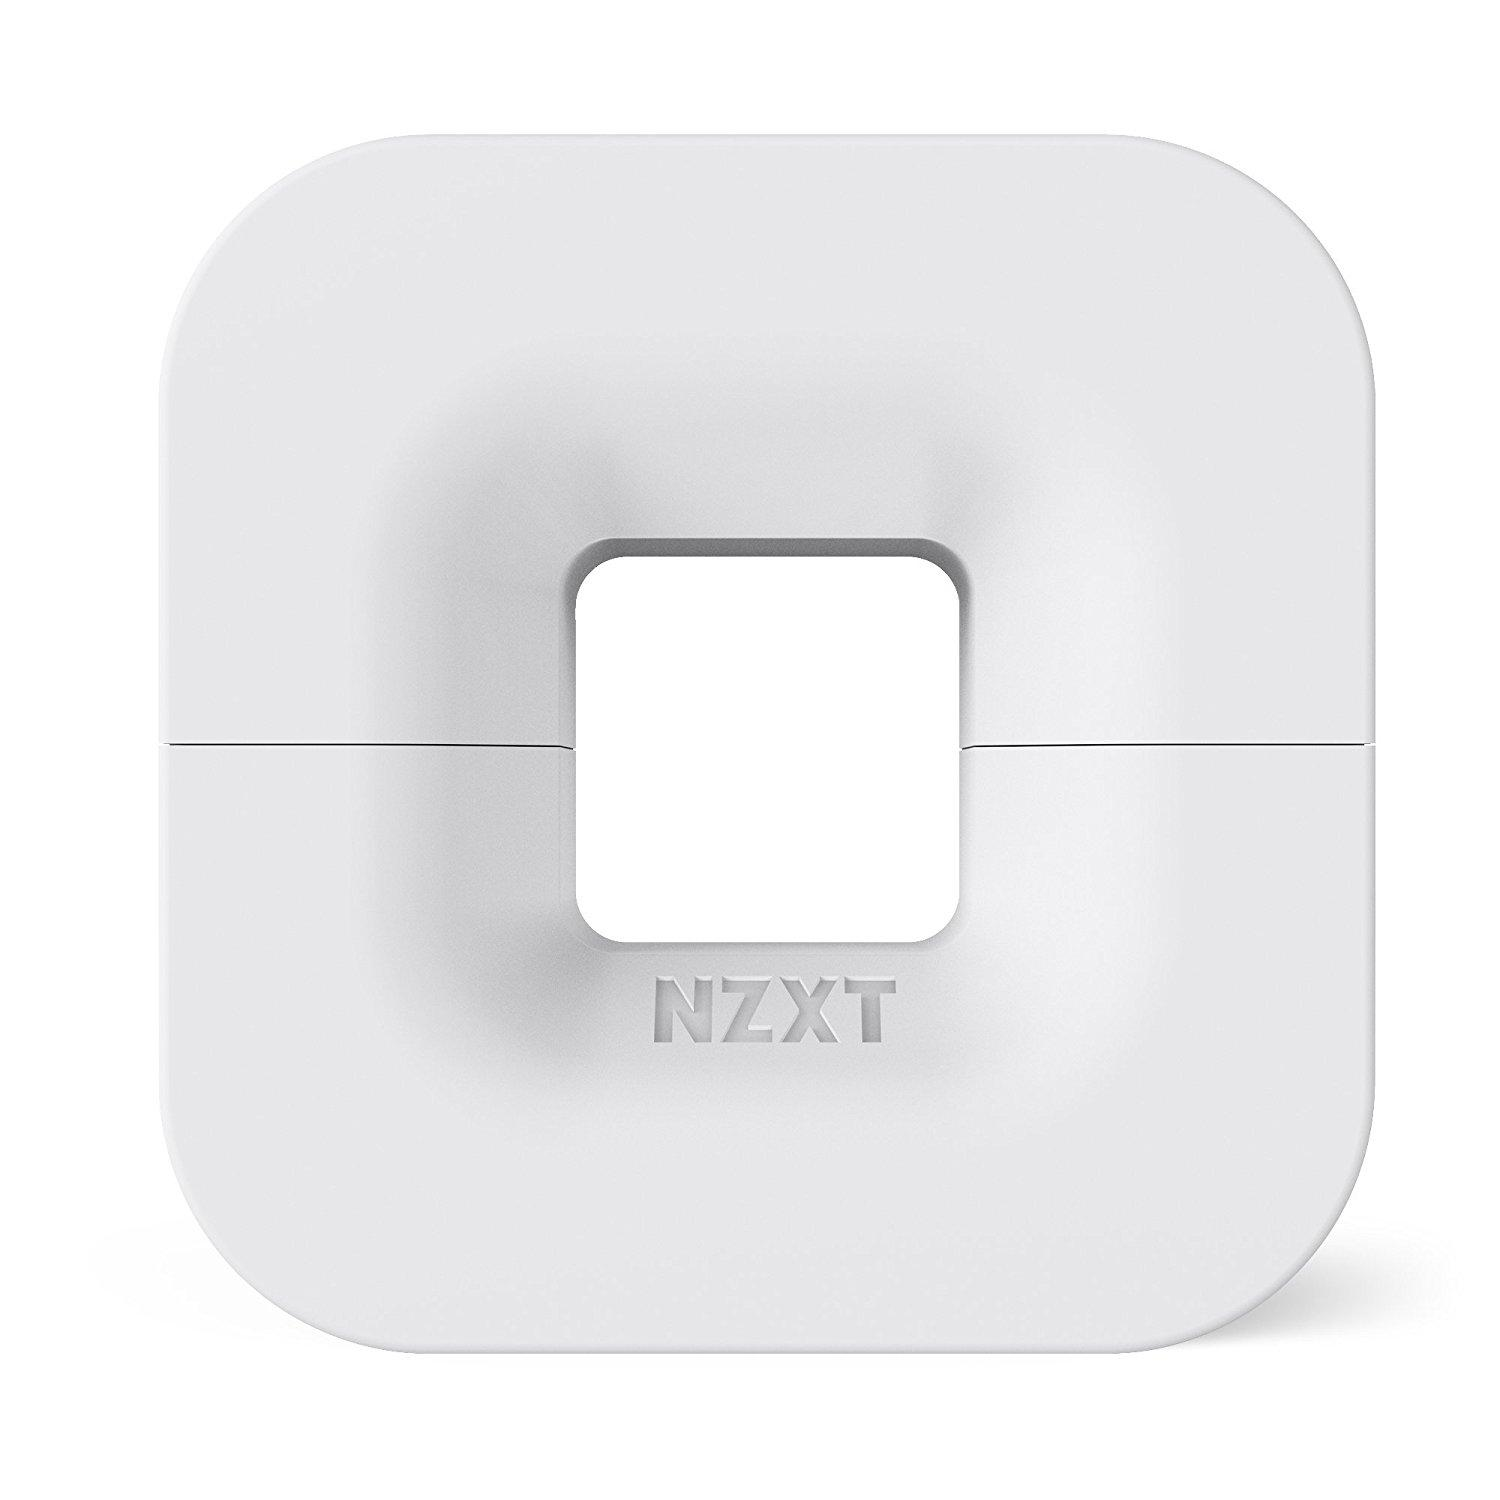 Поставка за слушалки NZXT Puck White BA-PUCKR-W1